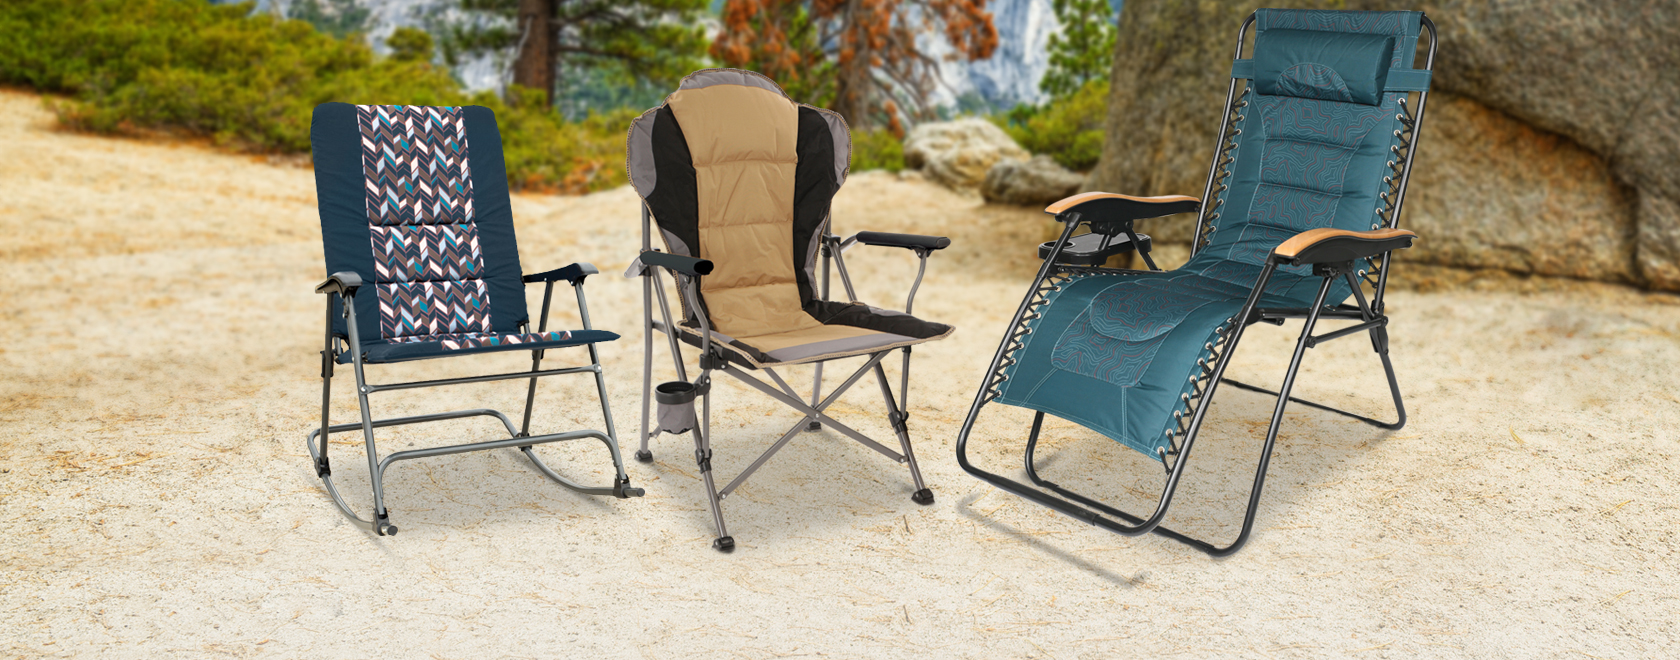 Save up to 50% on Rockers, Recliners, and more Outdoor Chairs